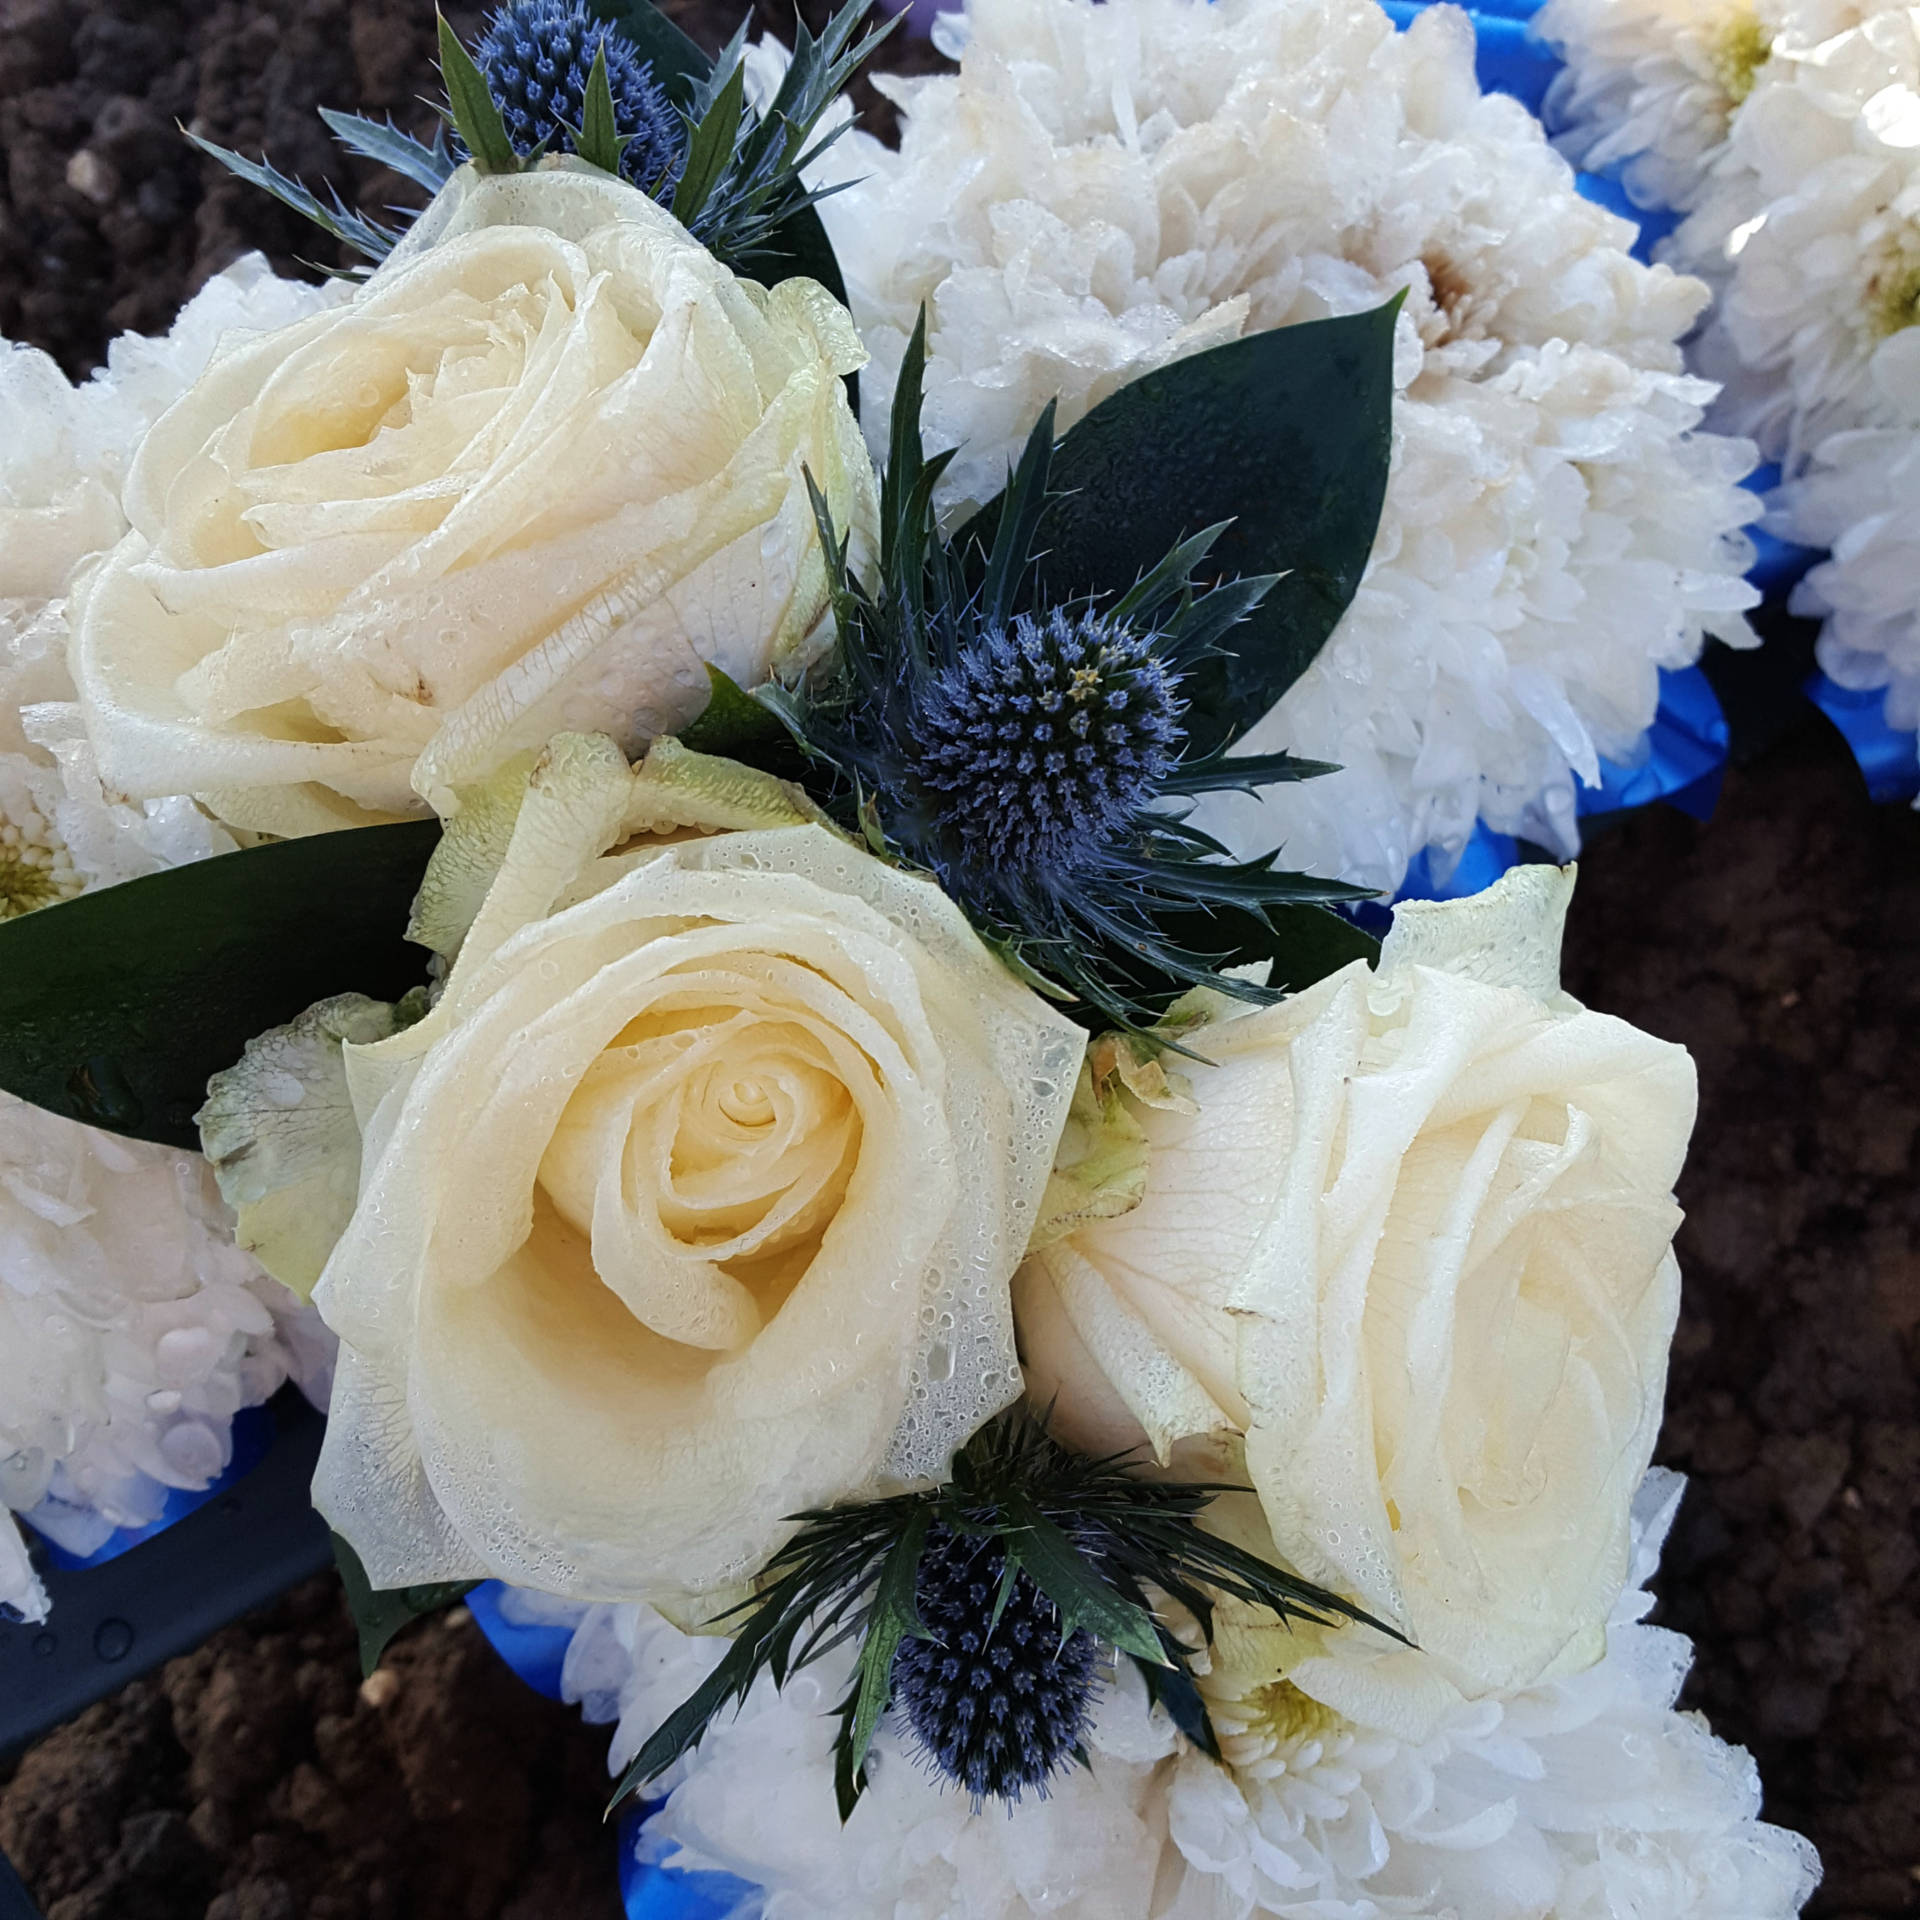 Flowers, Bouquet, Roses, Blue, White, White Roses, Into The Abyss, Funeral, Bereavement, Blog A Book Etc, Fay